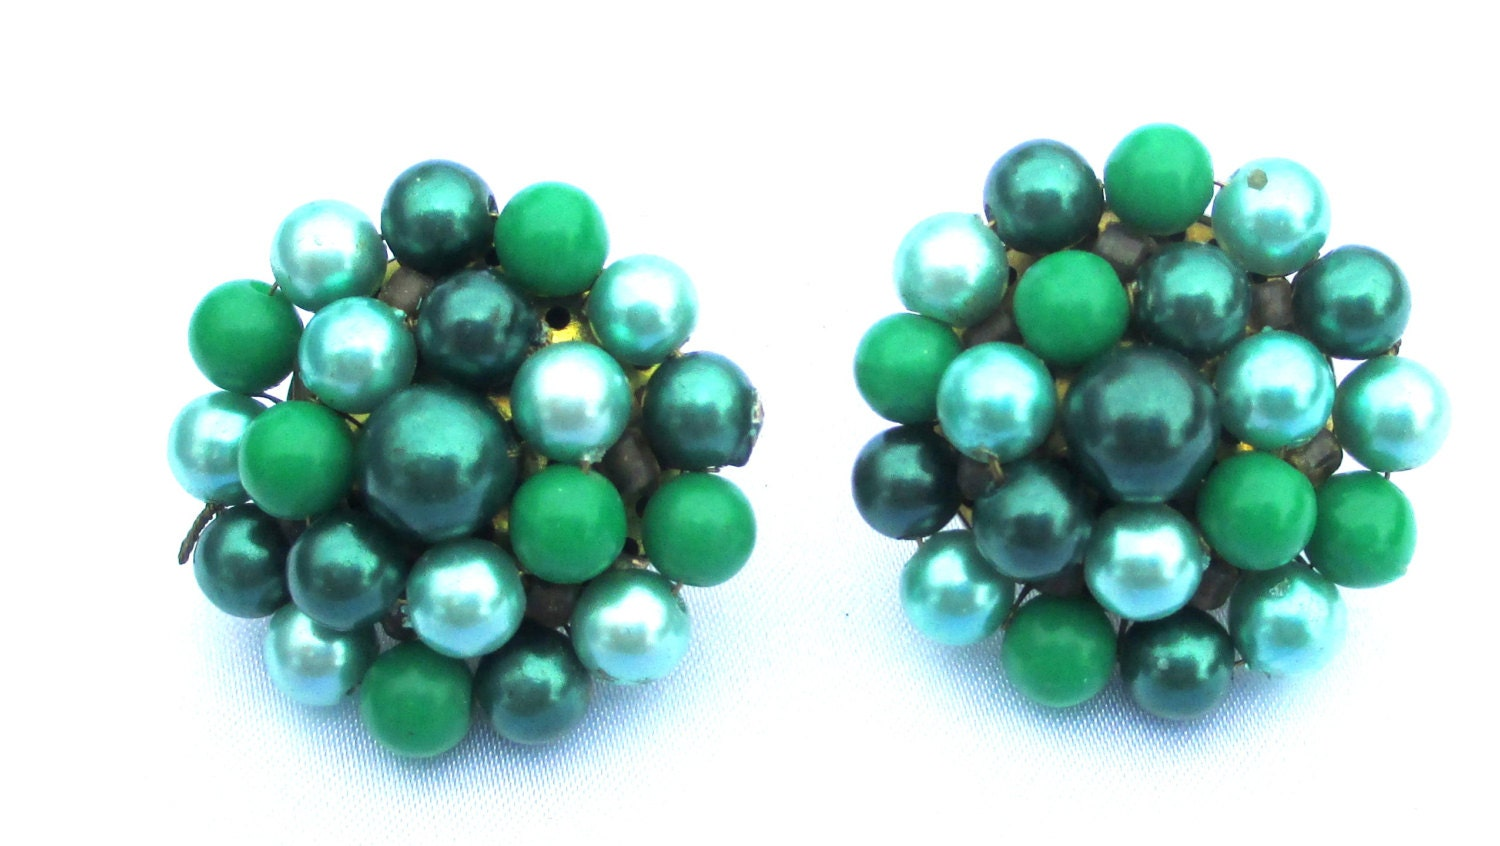 Vintage Green and Teal Beaded Cluster Earrings, Clip on Pierced Conversion Available - MickisVintageJewelry